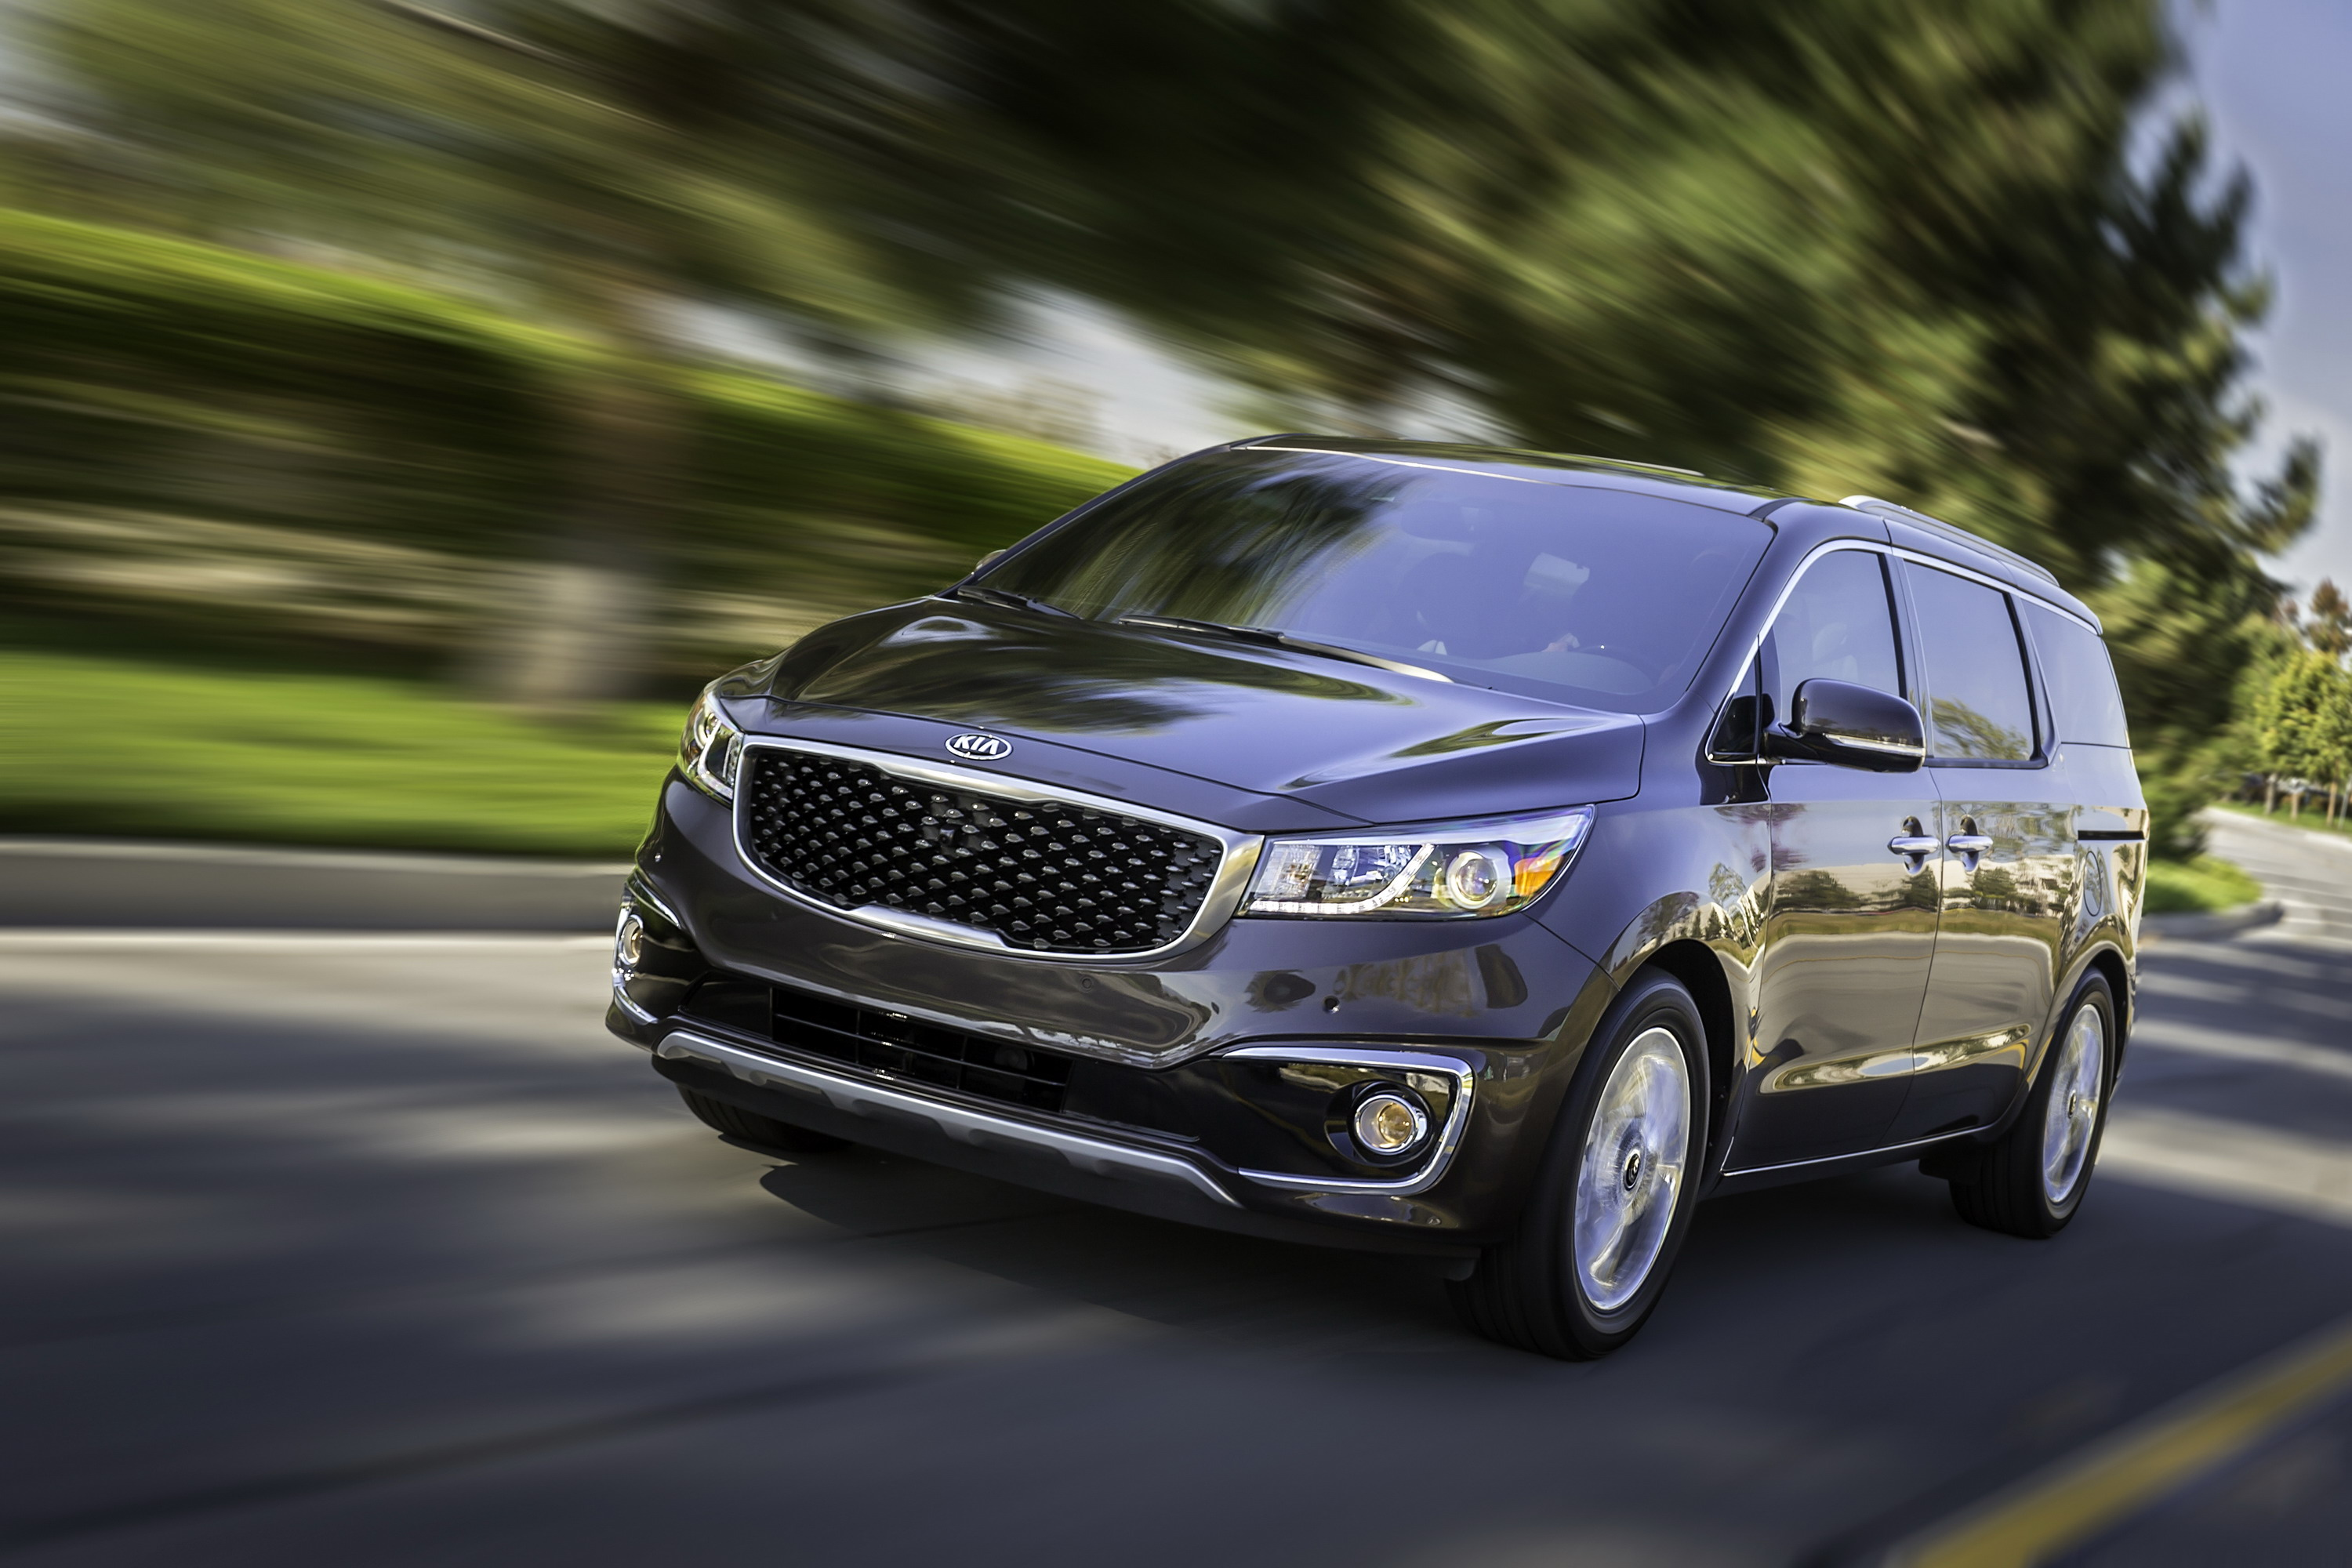 2015 Kia Sedona | Top Speed. »